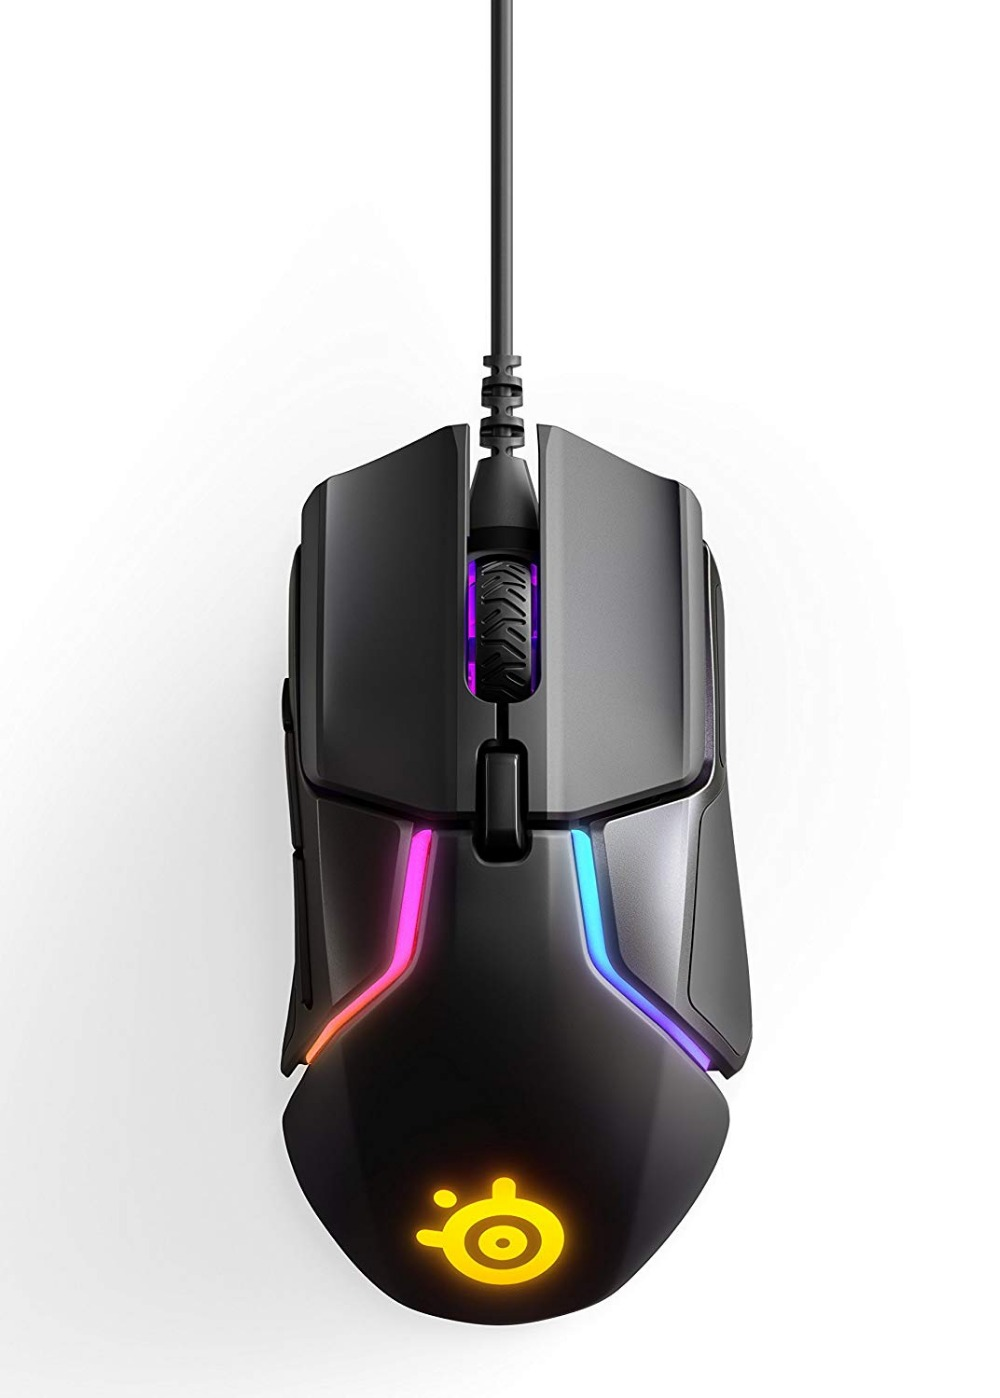 SteelSeries Rival 600 Gaming Mouse-12,000 CPI TrueMove3 + Dual Sensore Ottico-0.5 Distanza di Lift-off